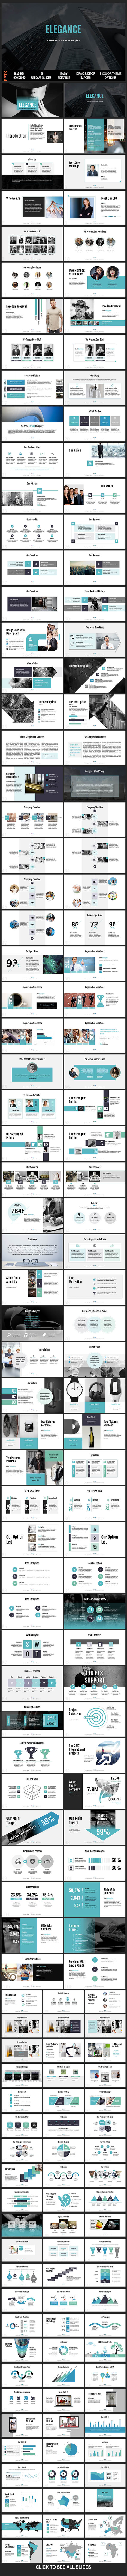 GraphicRiver Elegance PowerPoint Template 21126608